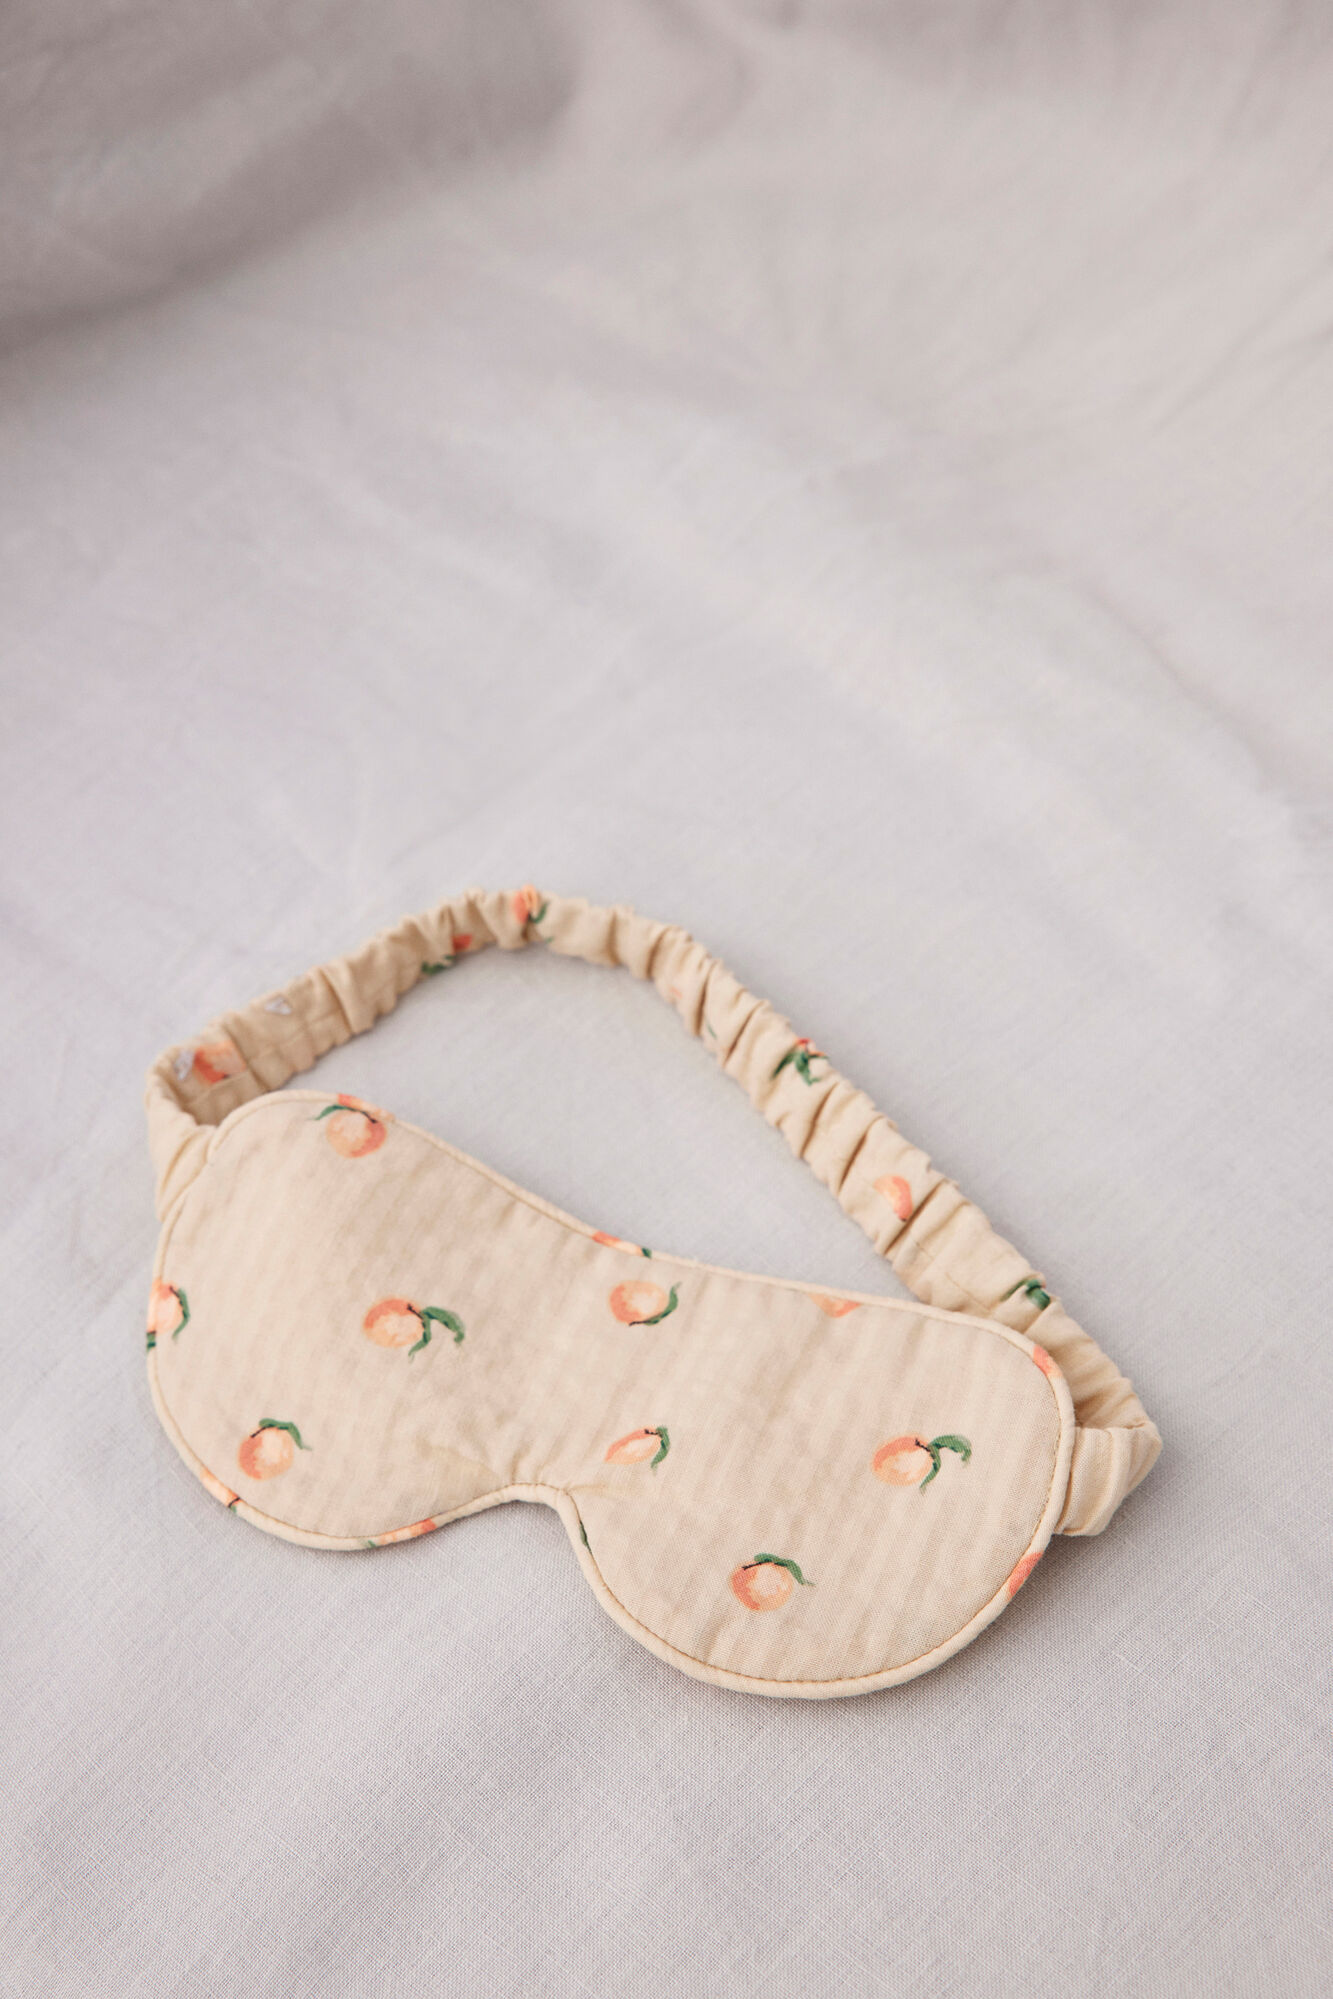 ENNIGHTTIME EYE MASK AOP 6743